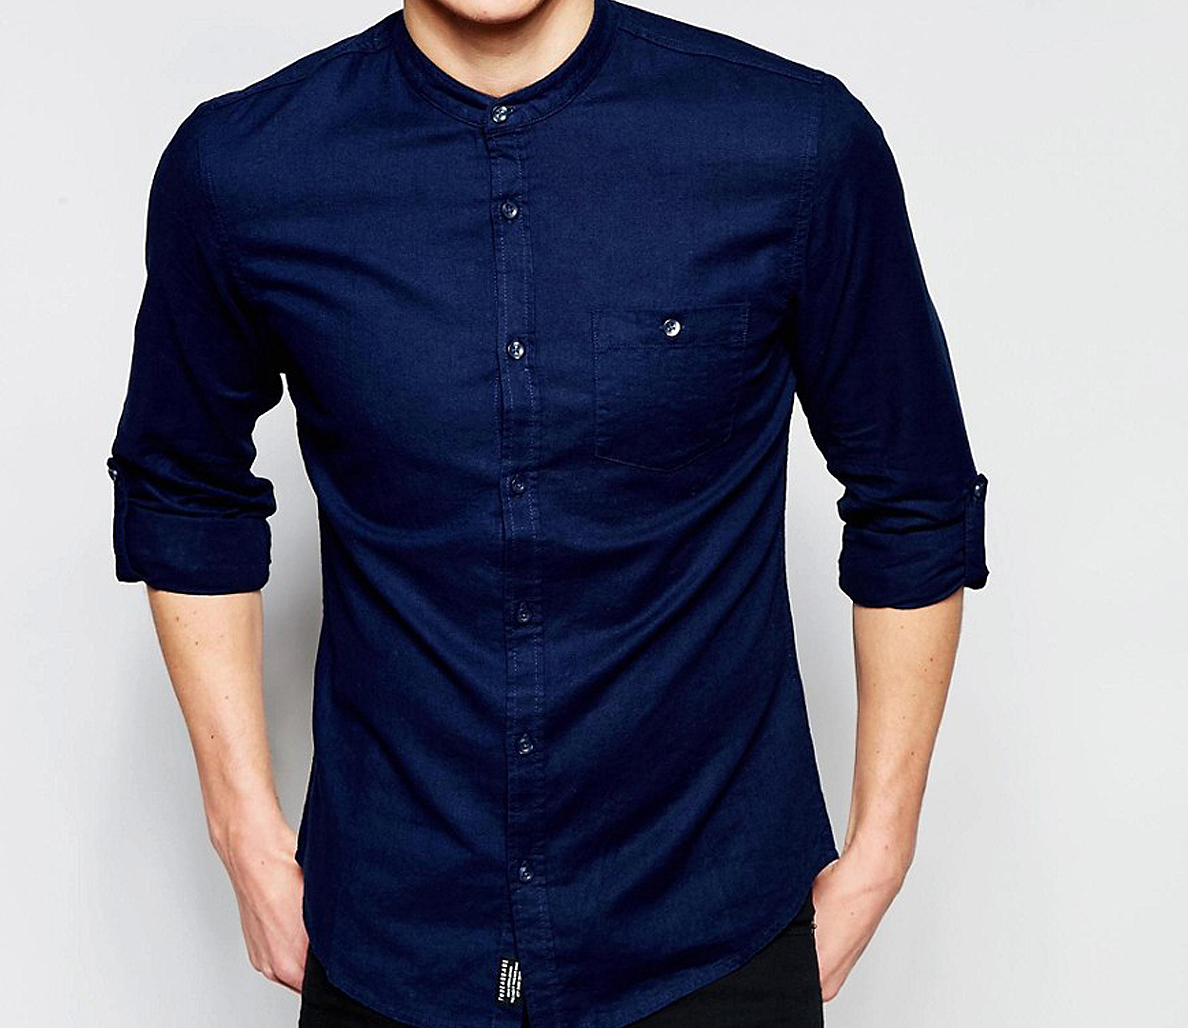 20 best button down shirts for men to wear in the summer heat